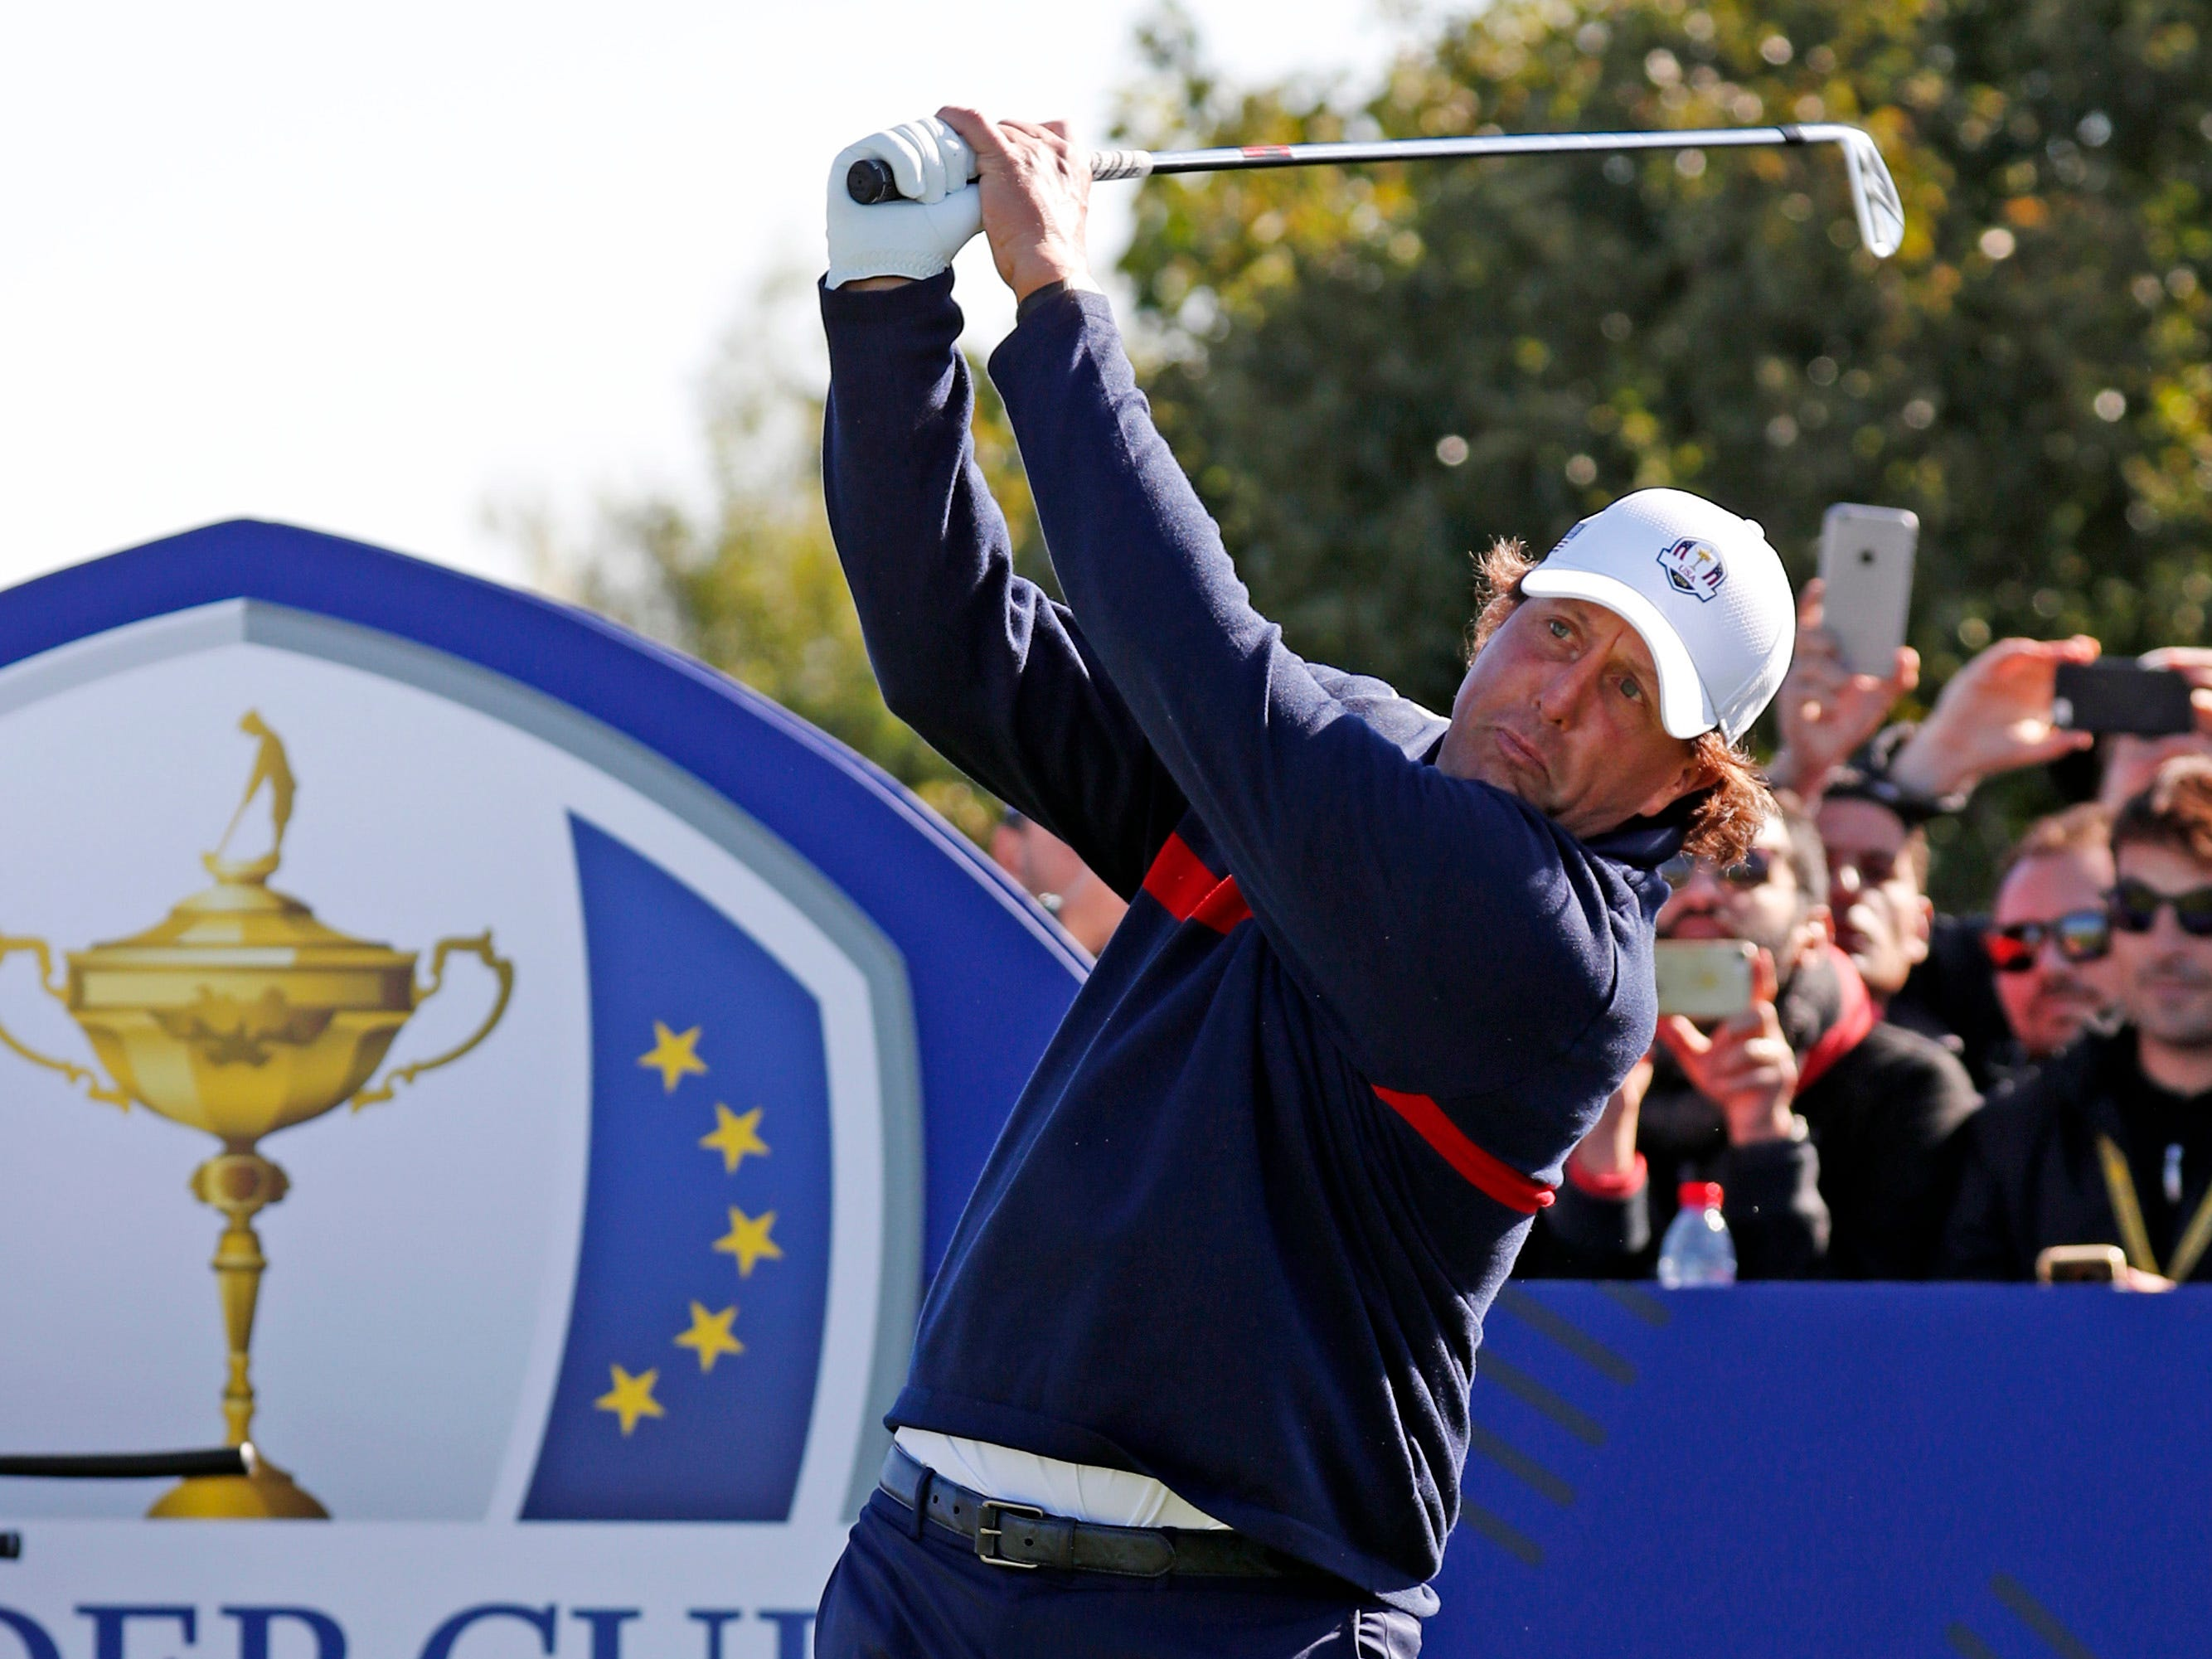 USA golfer Phil Mickelson tees off on the eighth hole during a Ryder Cup practice round.